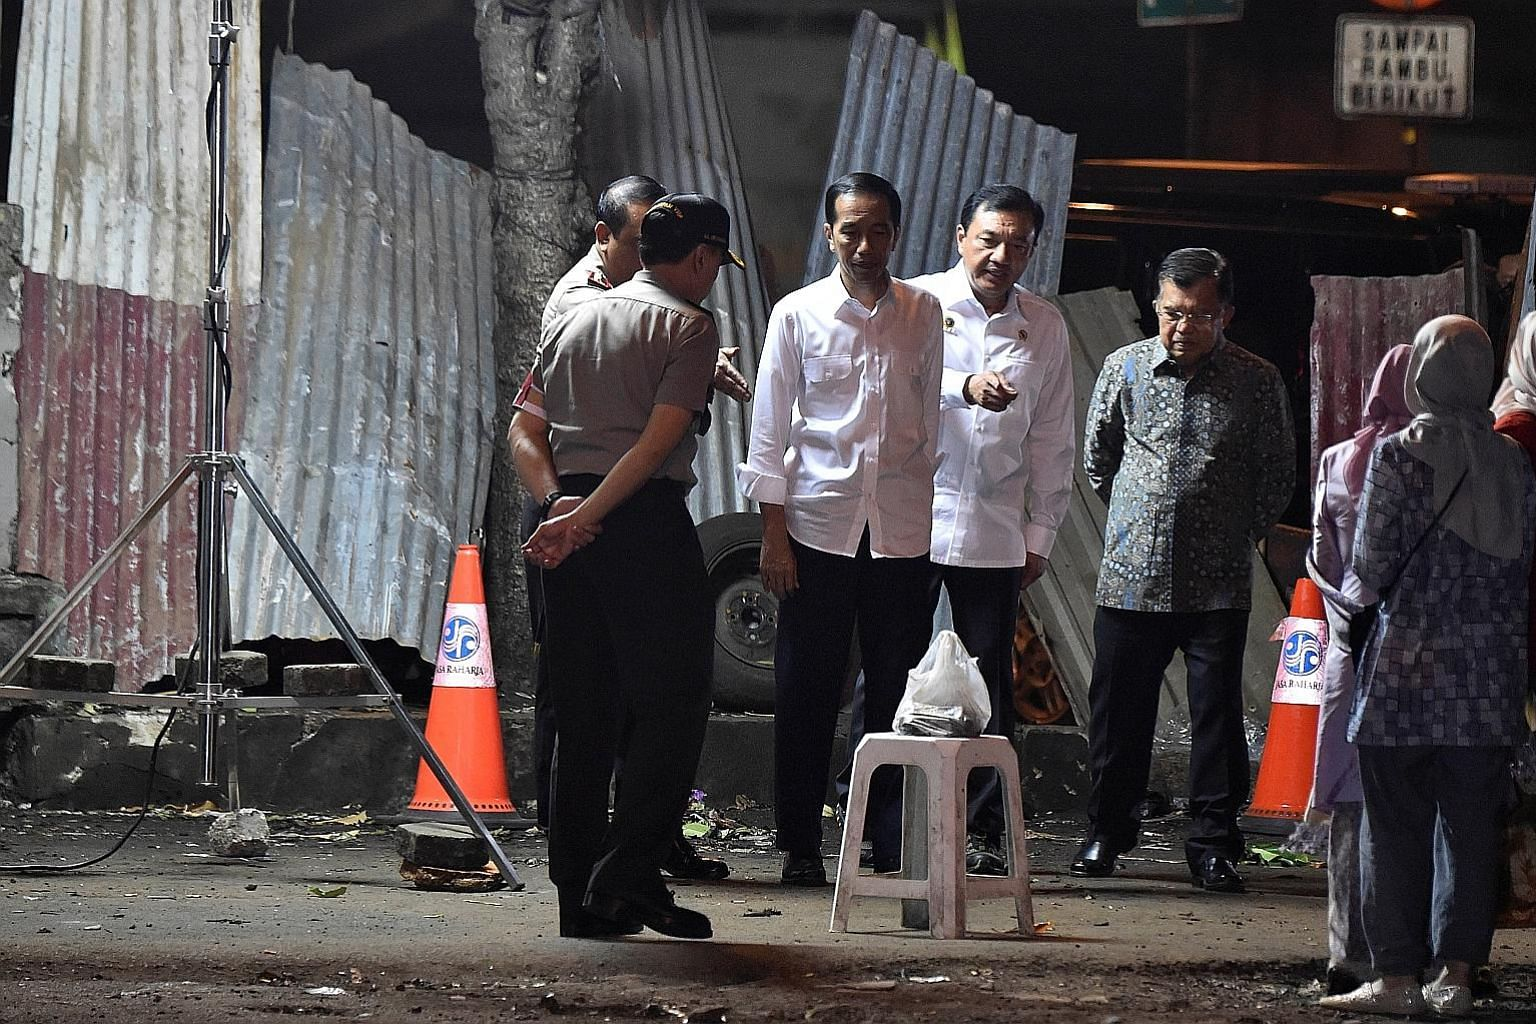 (From third from left) President Joko Widodo, State Intelligence Agency chief Budi Gunawan, and Indonesian Vice-President Jusuf Kalla at the bomb blast site at the Kampung Melayu bus station in Jakarta on Thursday.